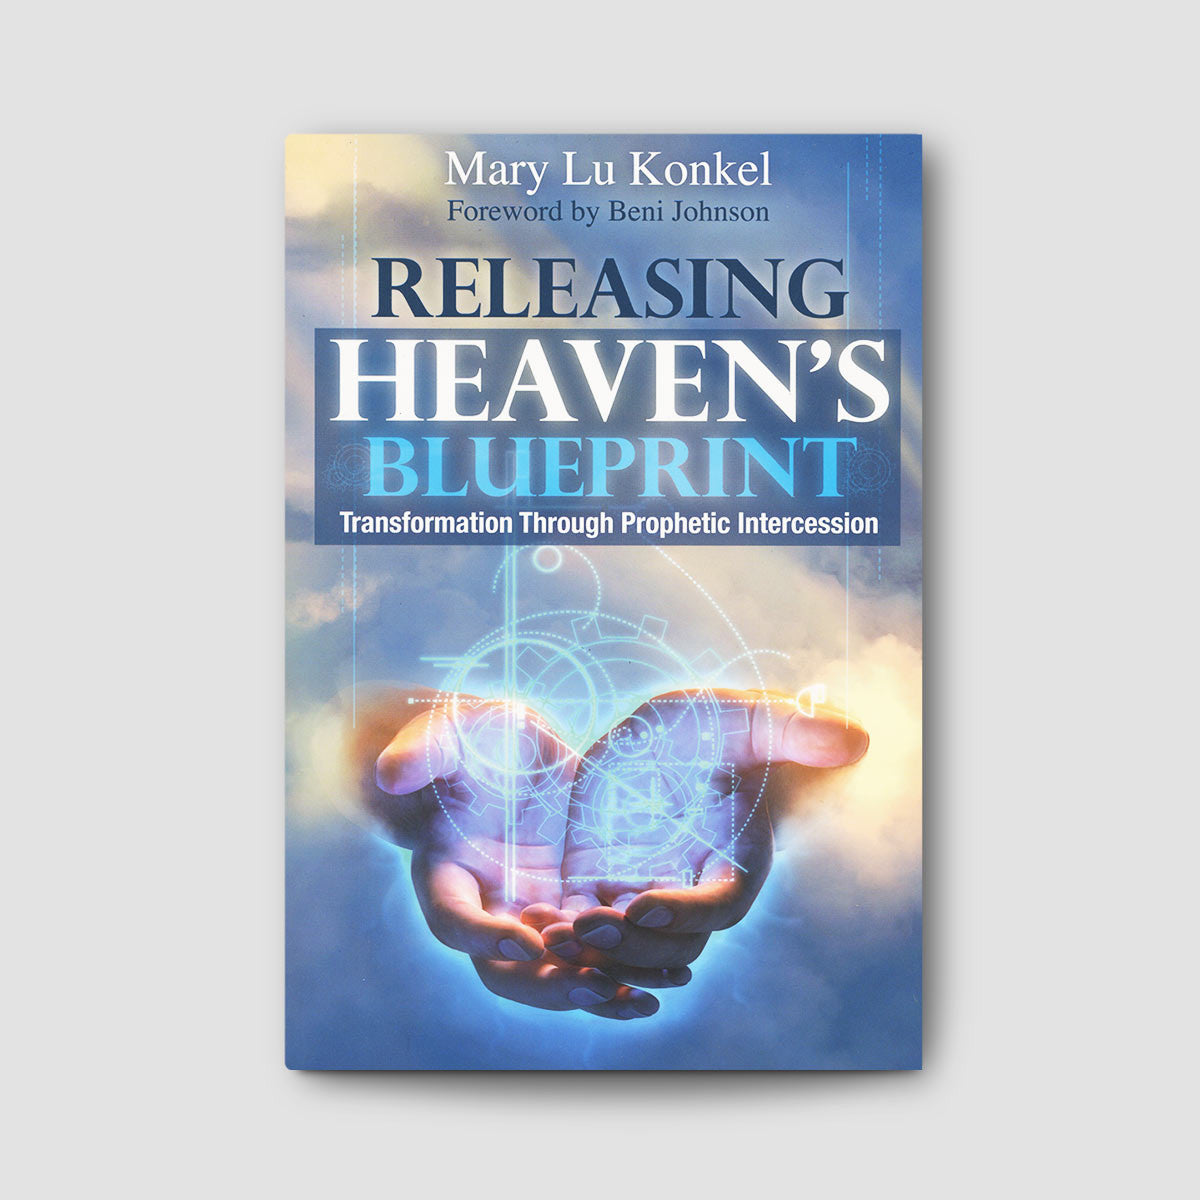 Releasing Heaven's Blueprint